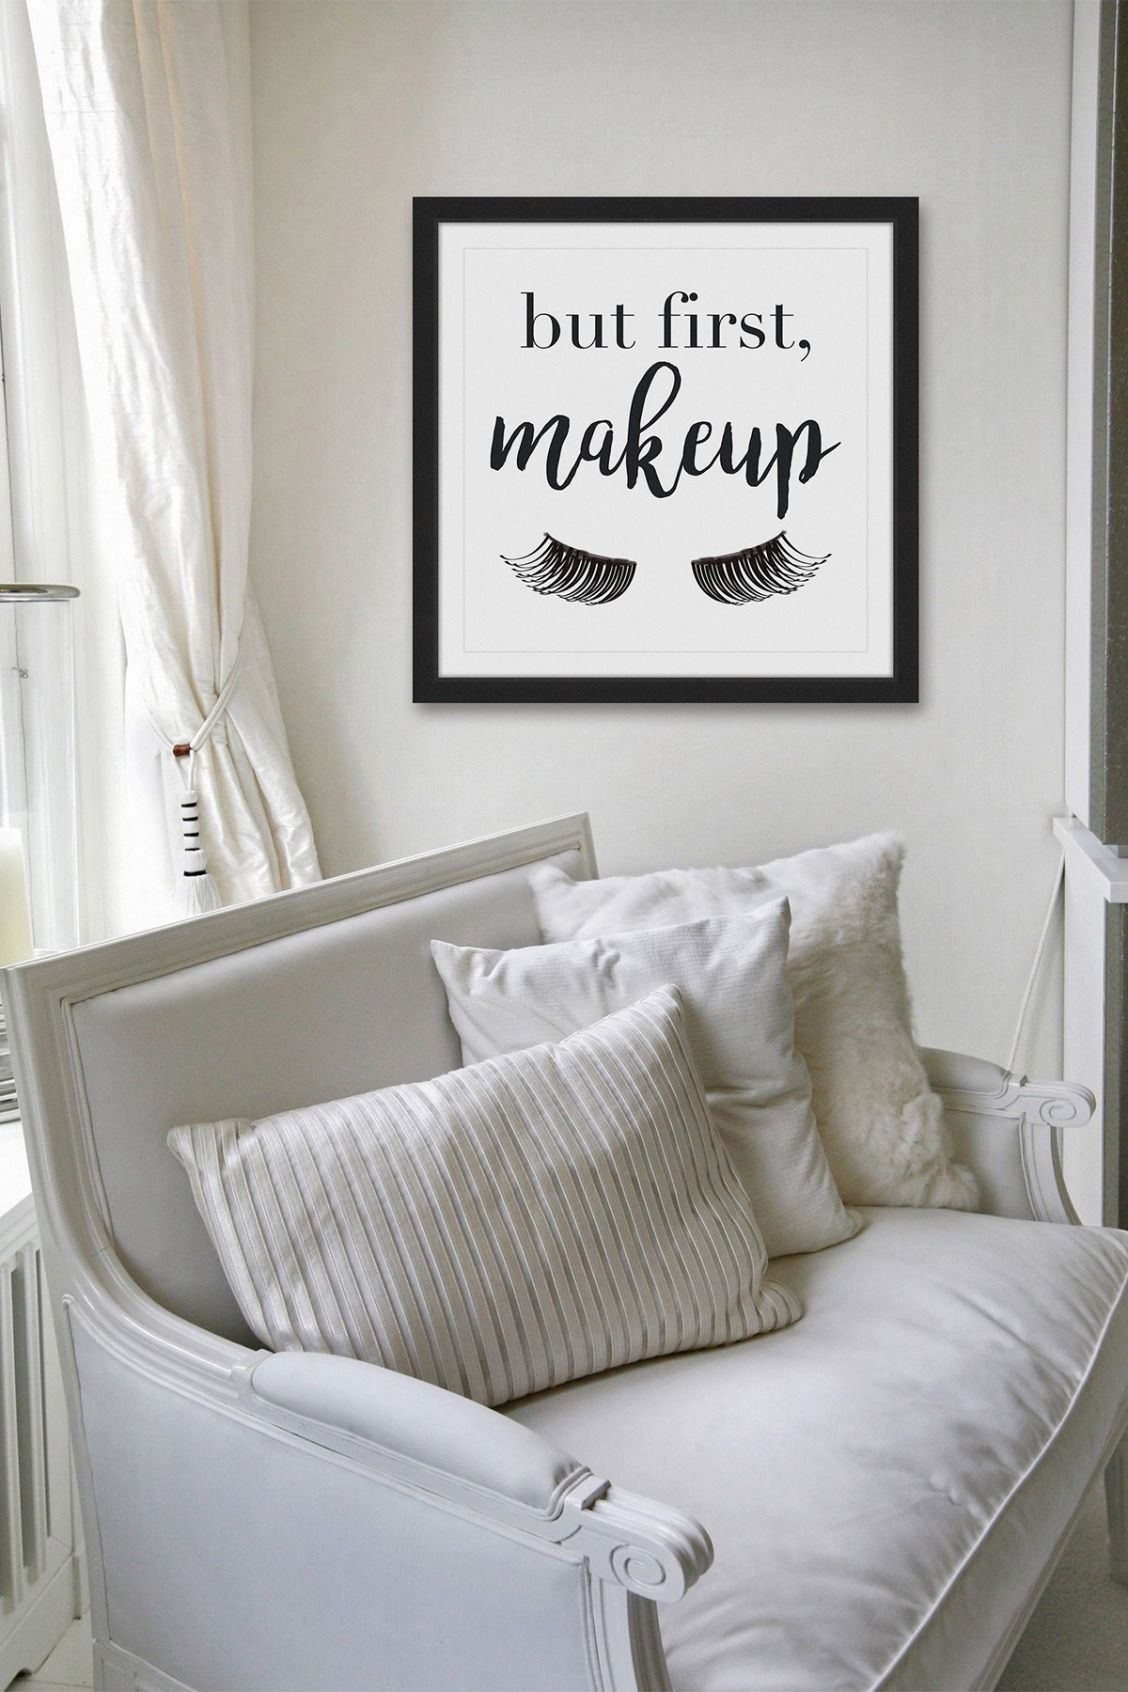 But first makeup perfect wall art for the bedroom or bathroom